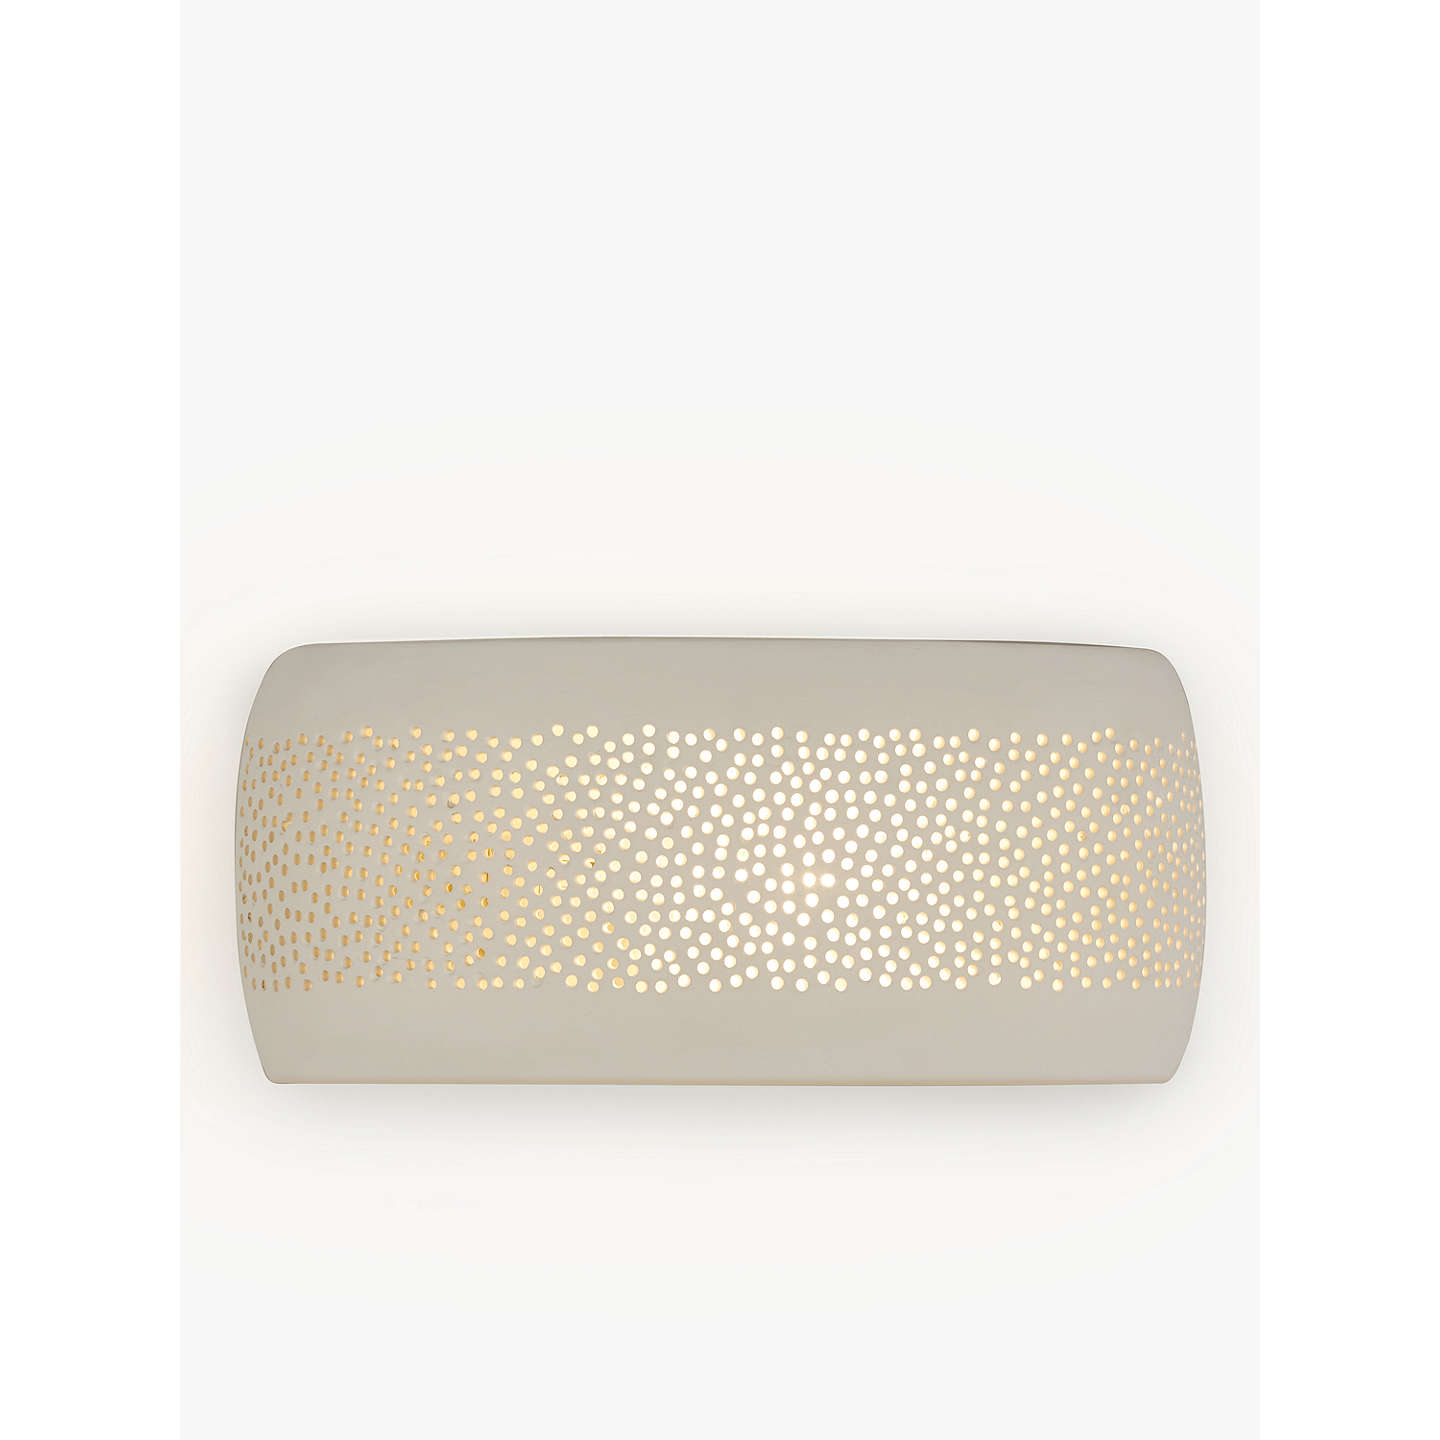 John lewis flynn wall light at john lewis buyjohn lewis flynn wall light online at johnlewis aloadofball Image collections